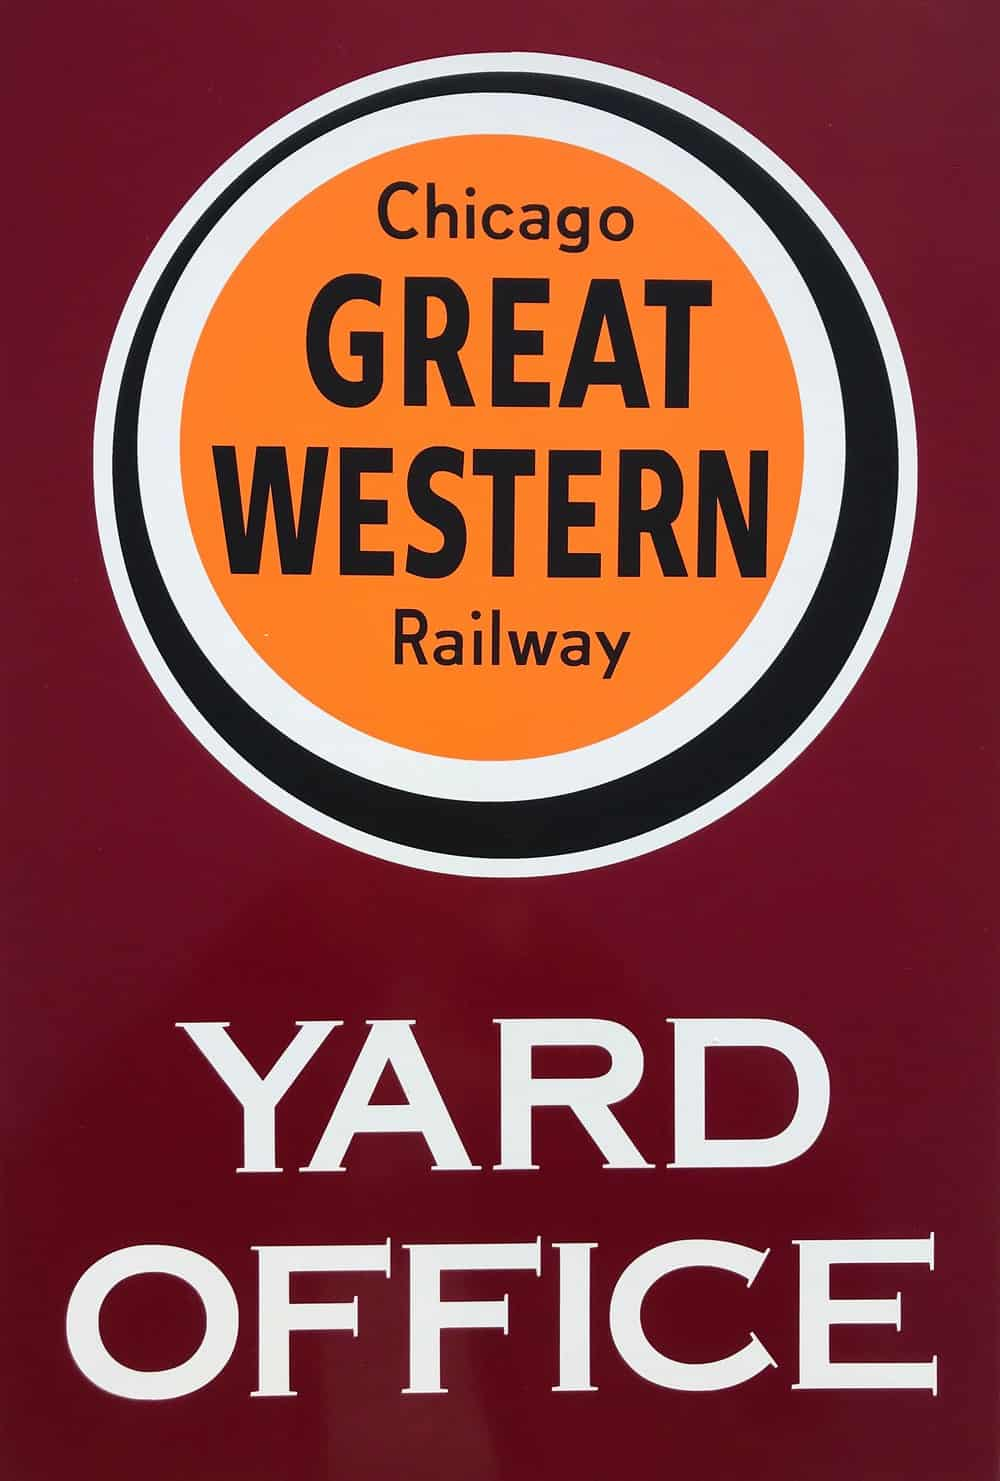 Chicago Great Western Railway Yard Office Sign Cardinal Sign